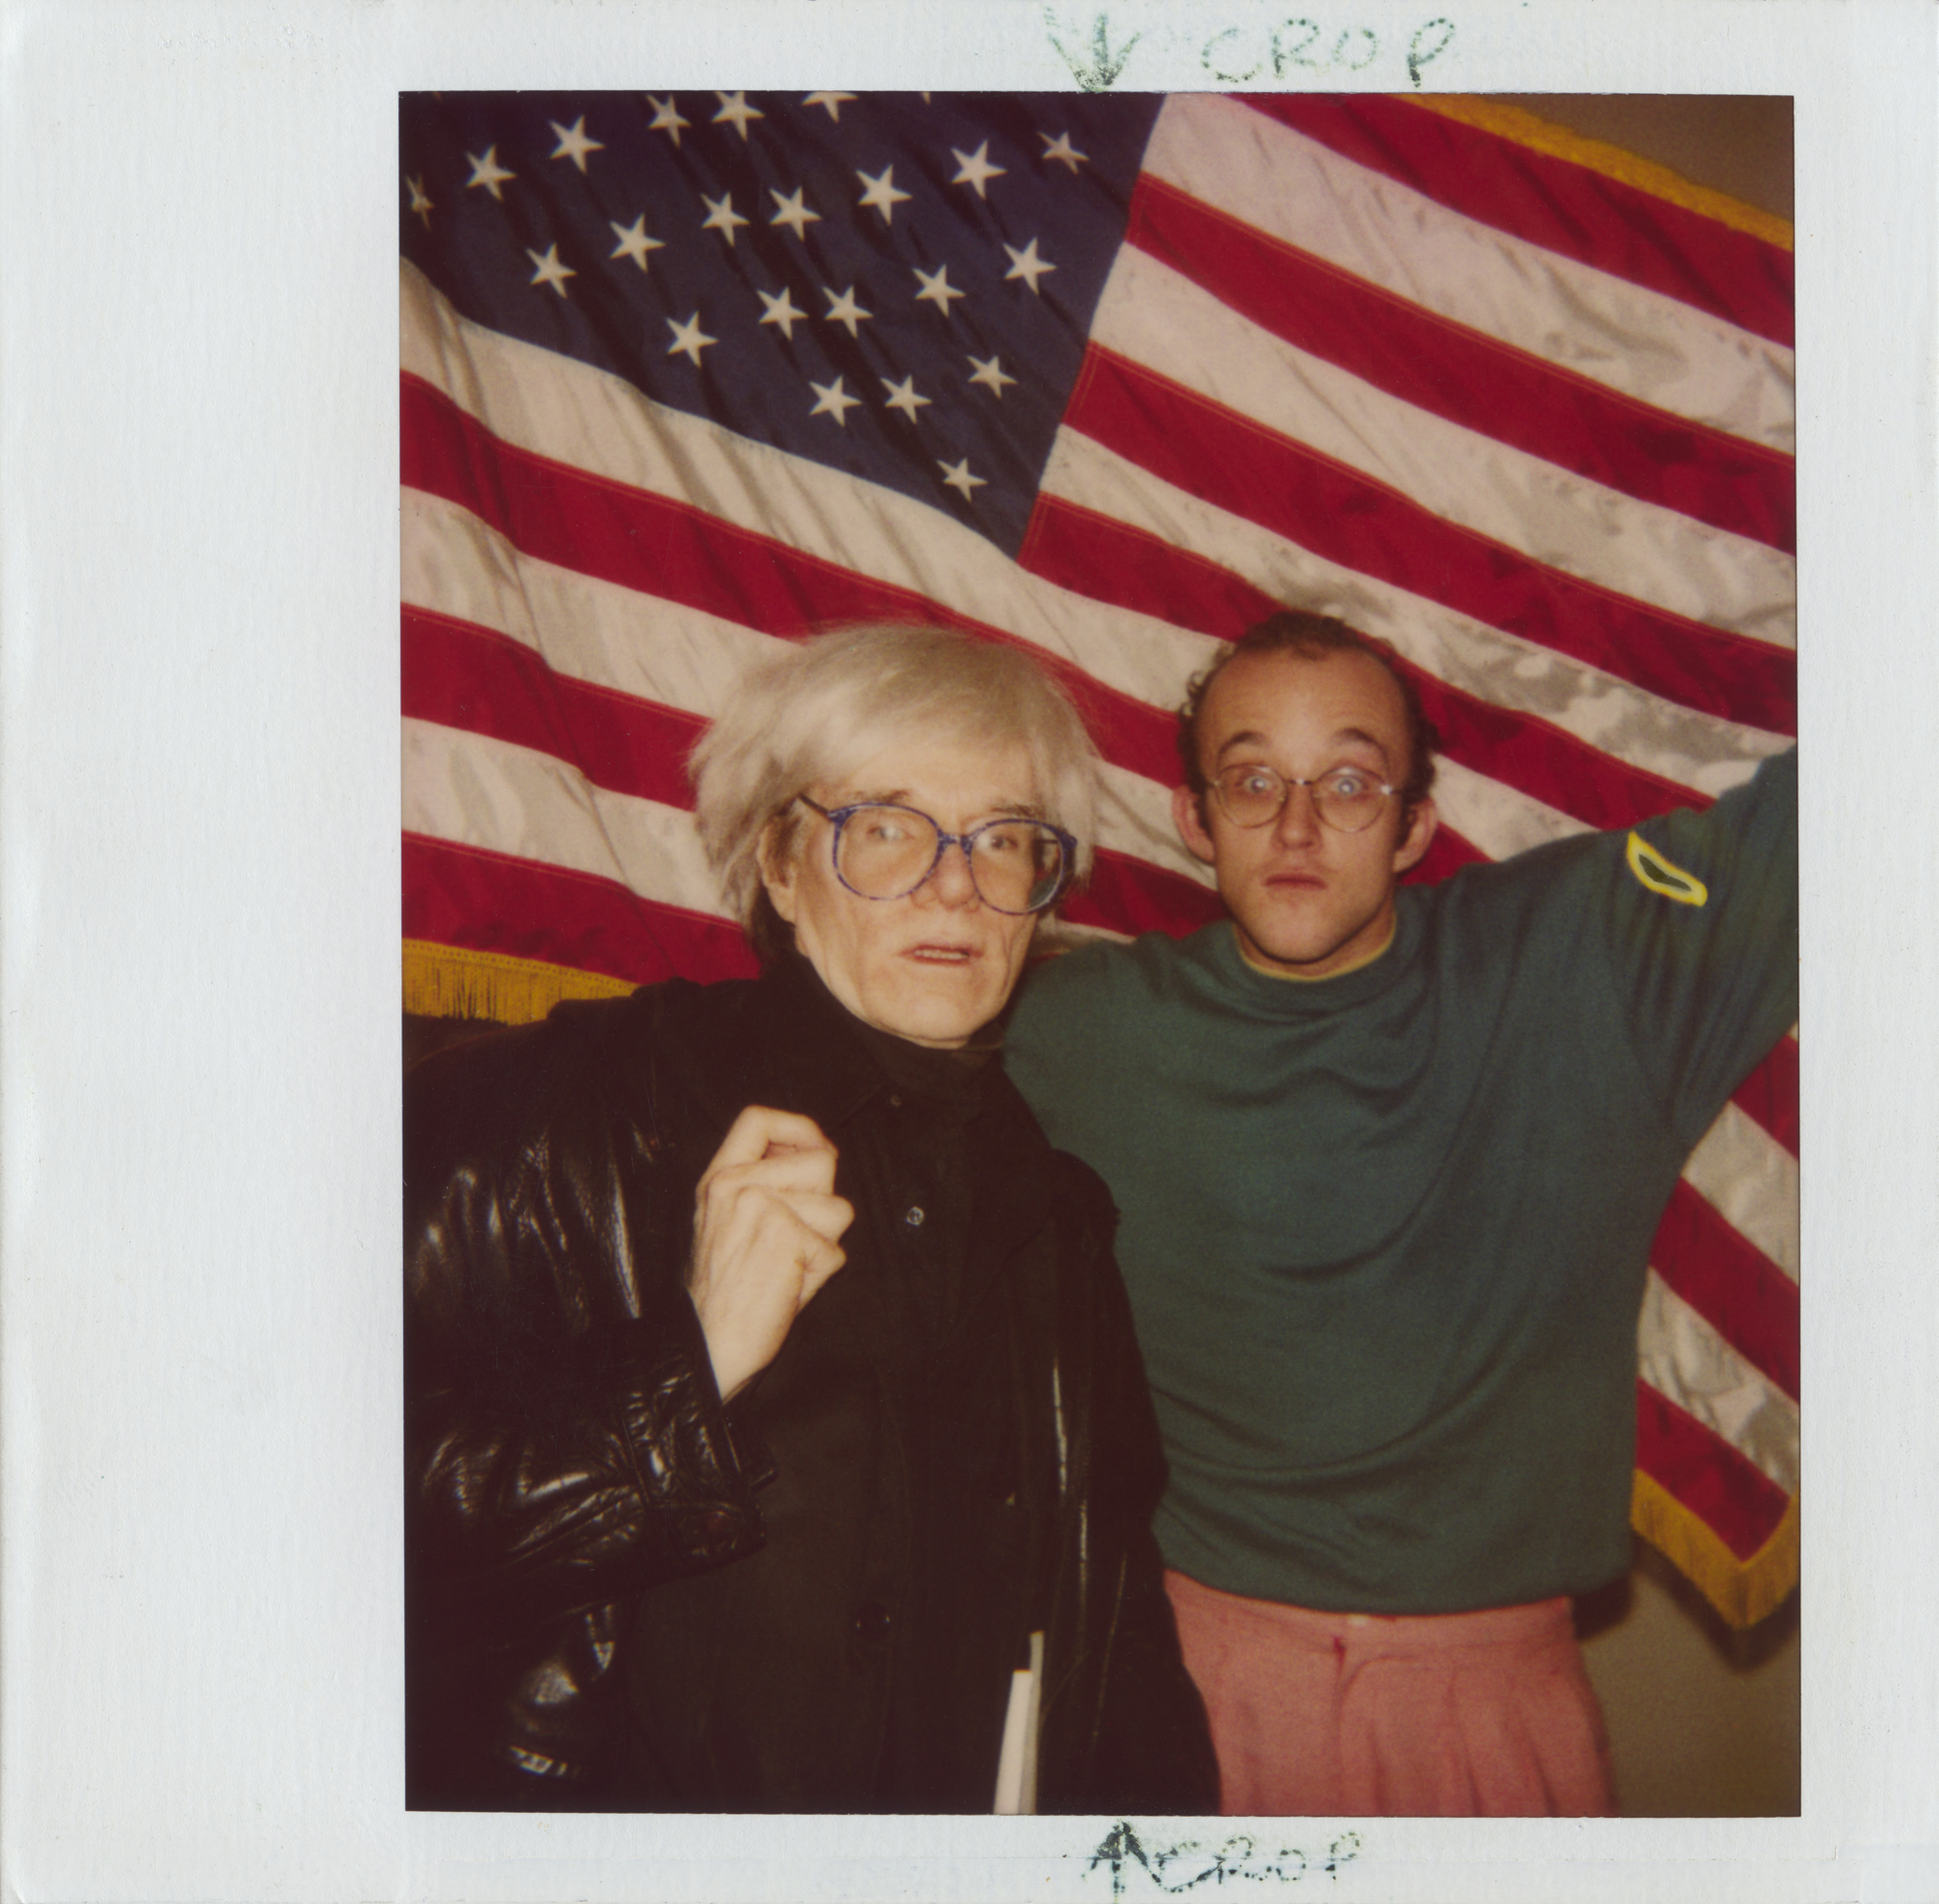 Andy Warhol and Keith Haring.